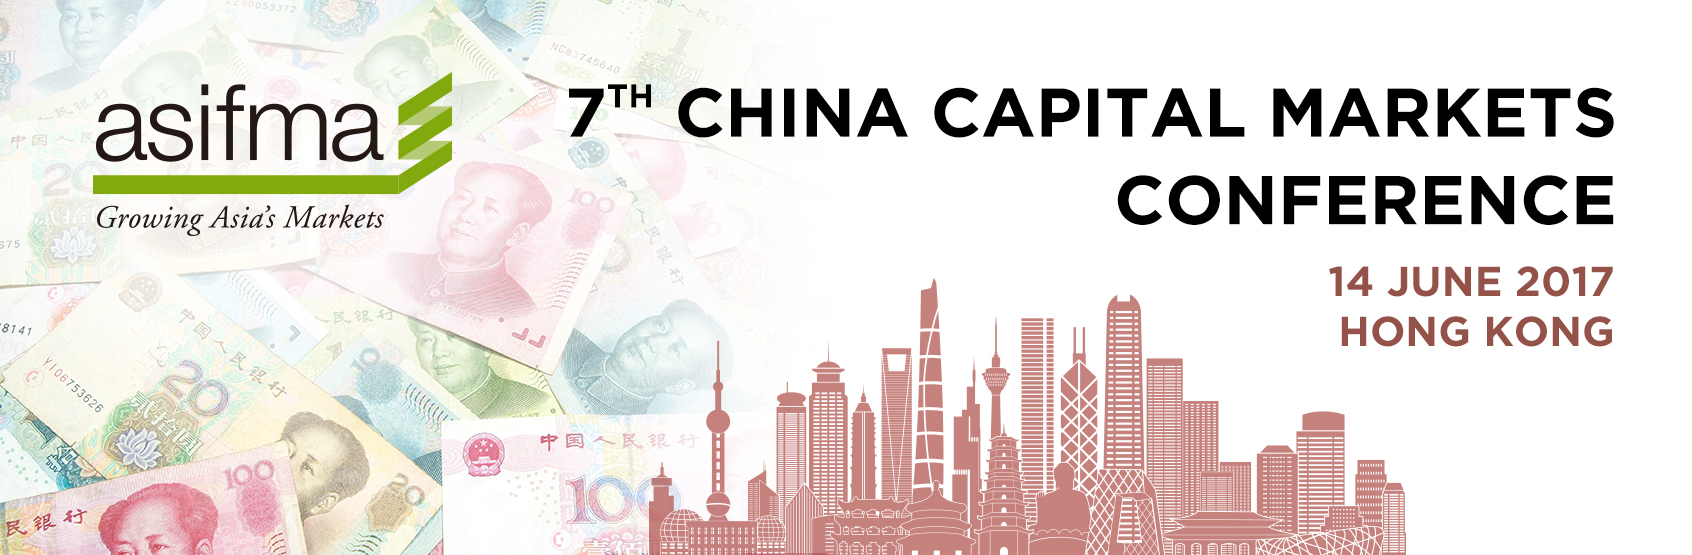 asifma-china-capital-markets-conference_event-branding